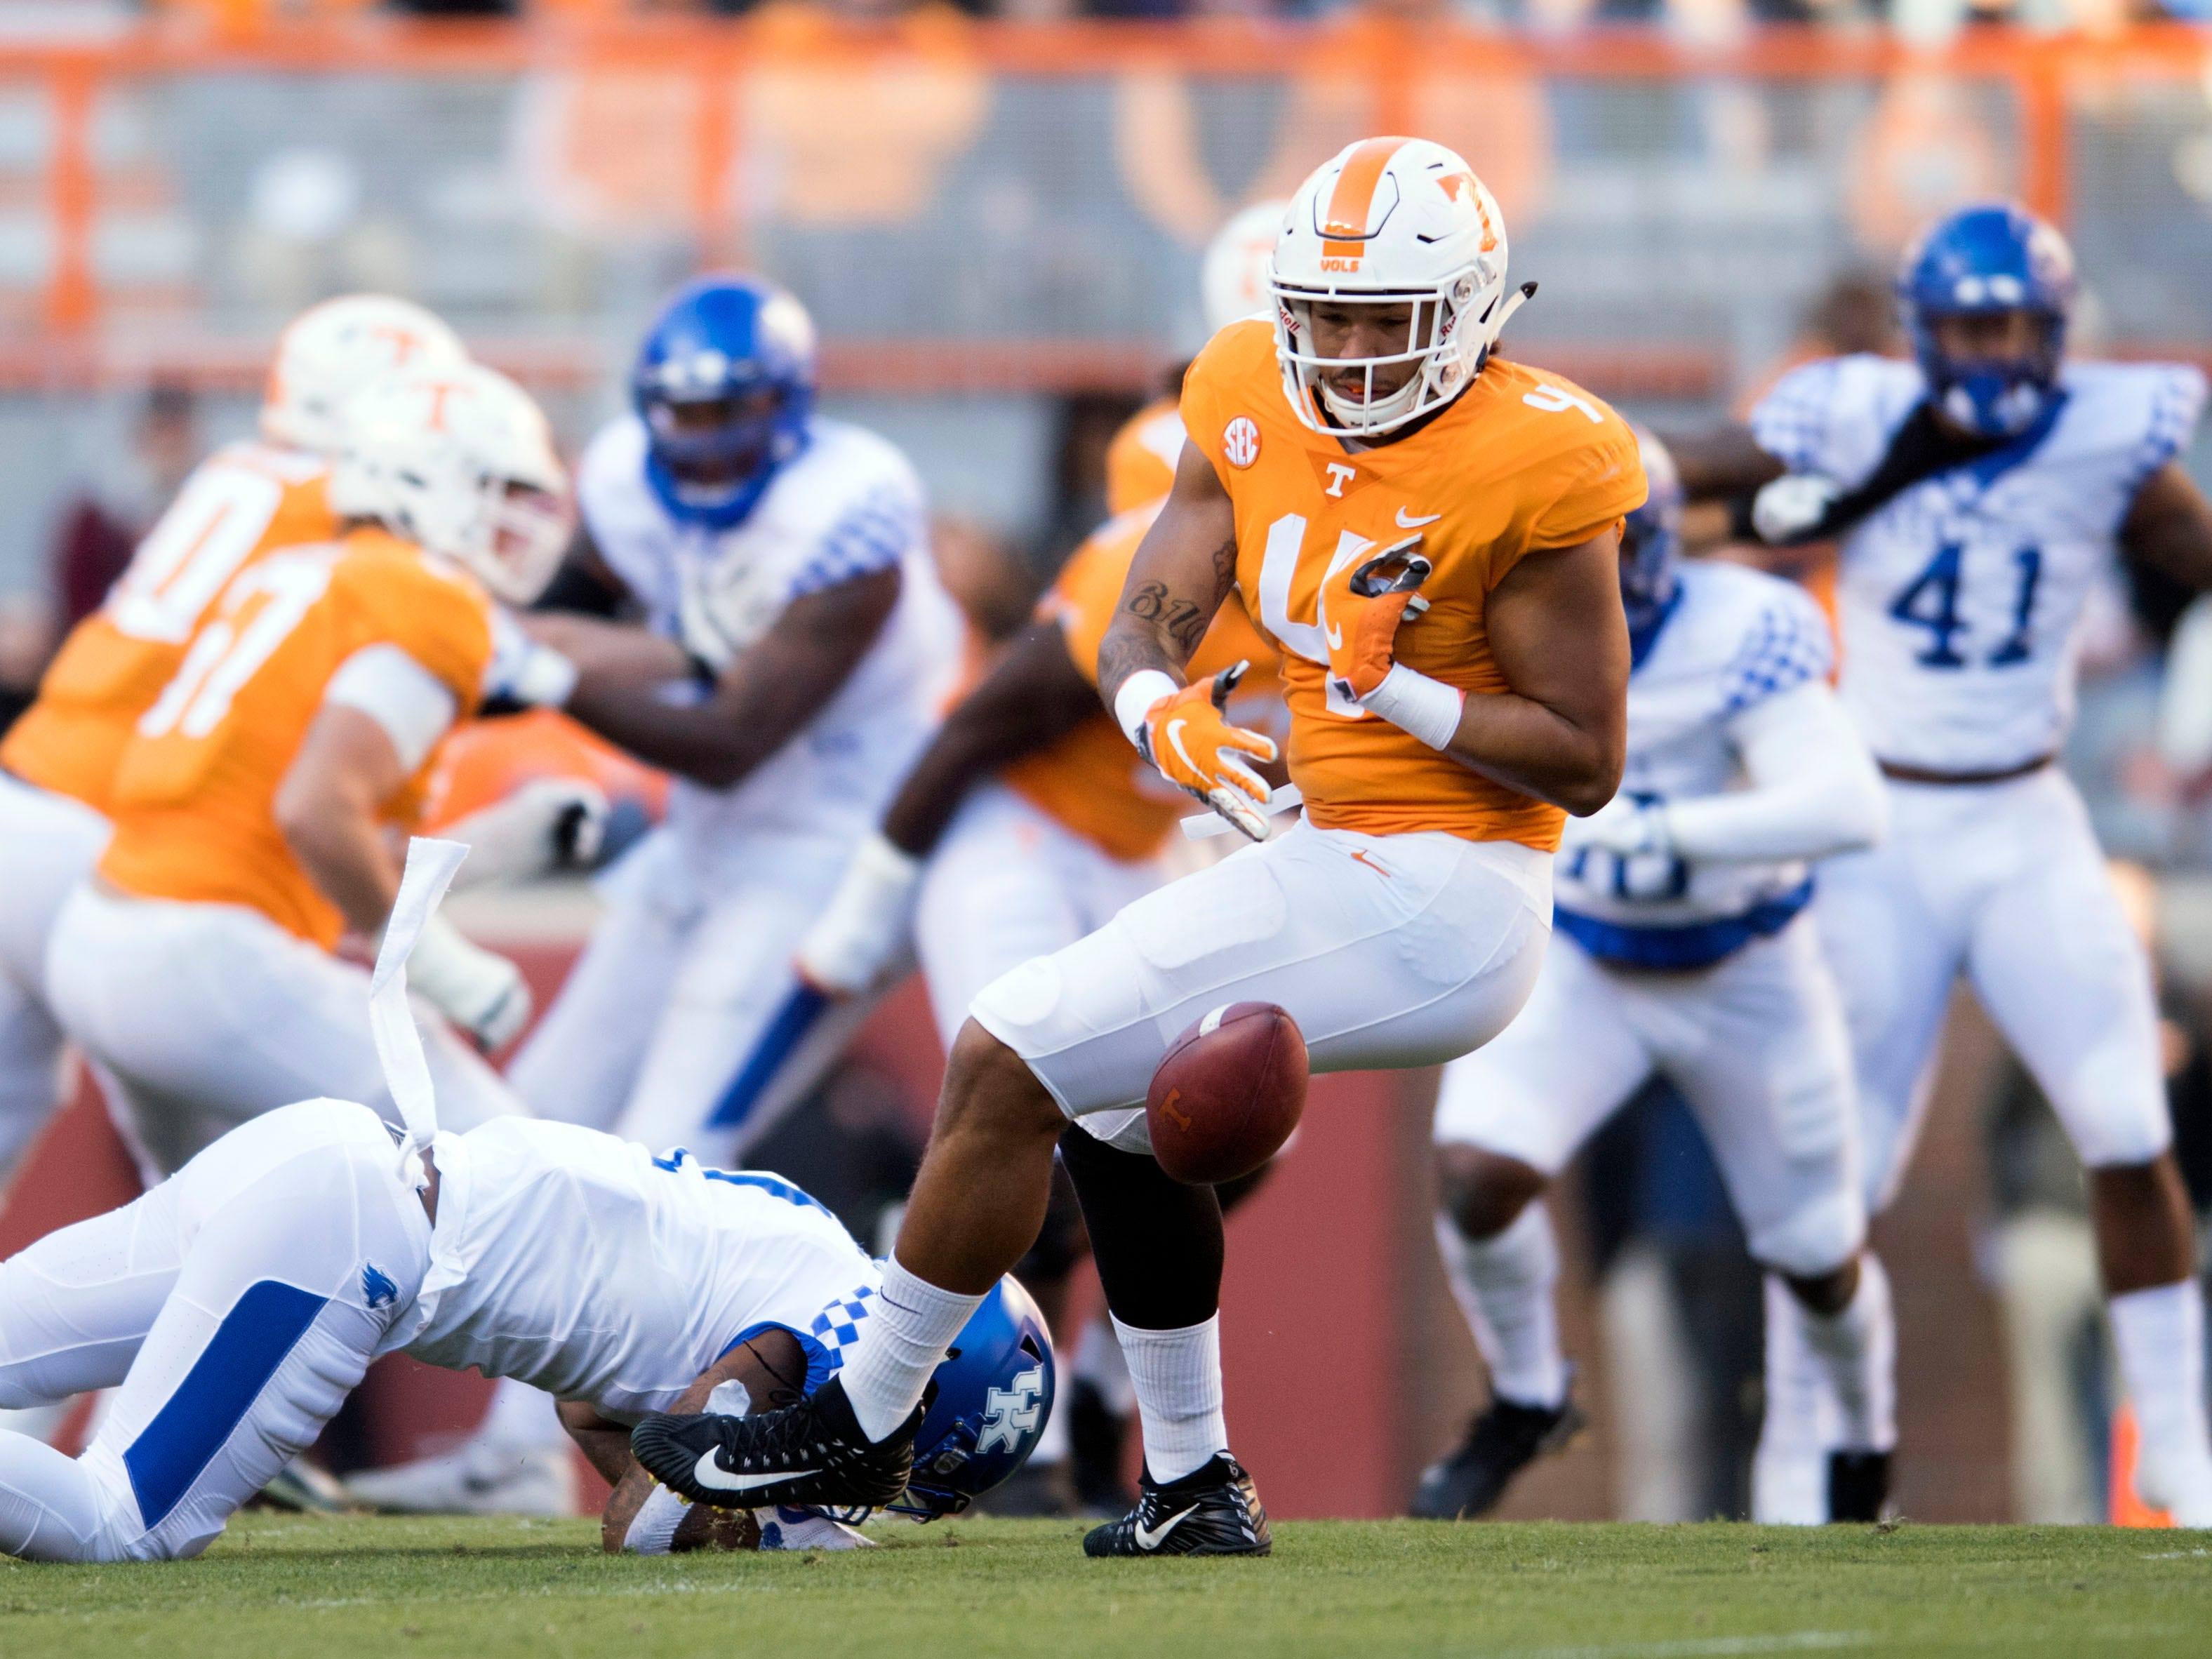 A pass to Tennessee tight end Dominick Wood-Anderson (4) falls incomplete during a game between Tennessee and Kentucky at Neyland Stadium in Knoxville, Tennessee on Saturday, November 10, 2018.